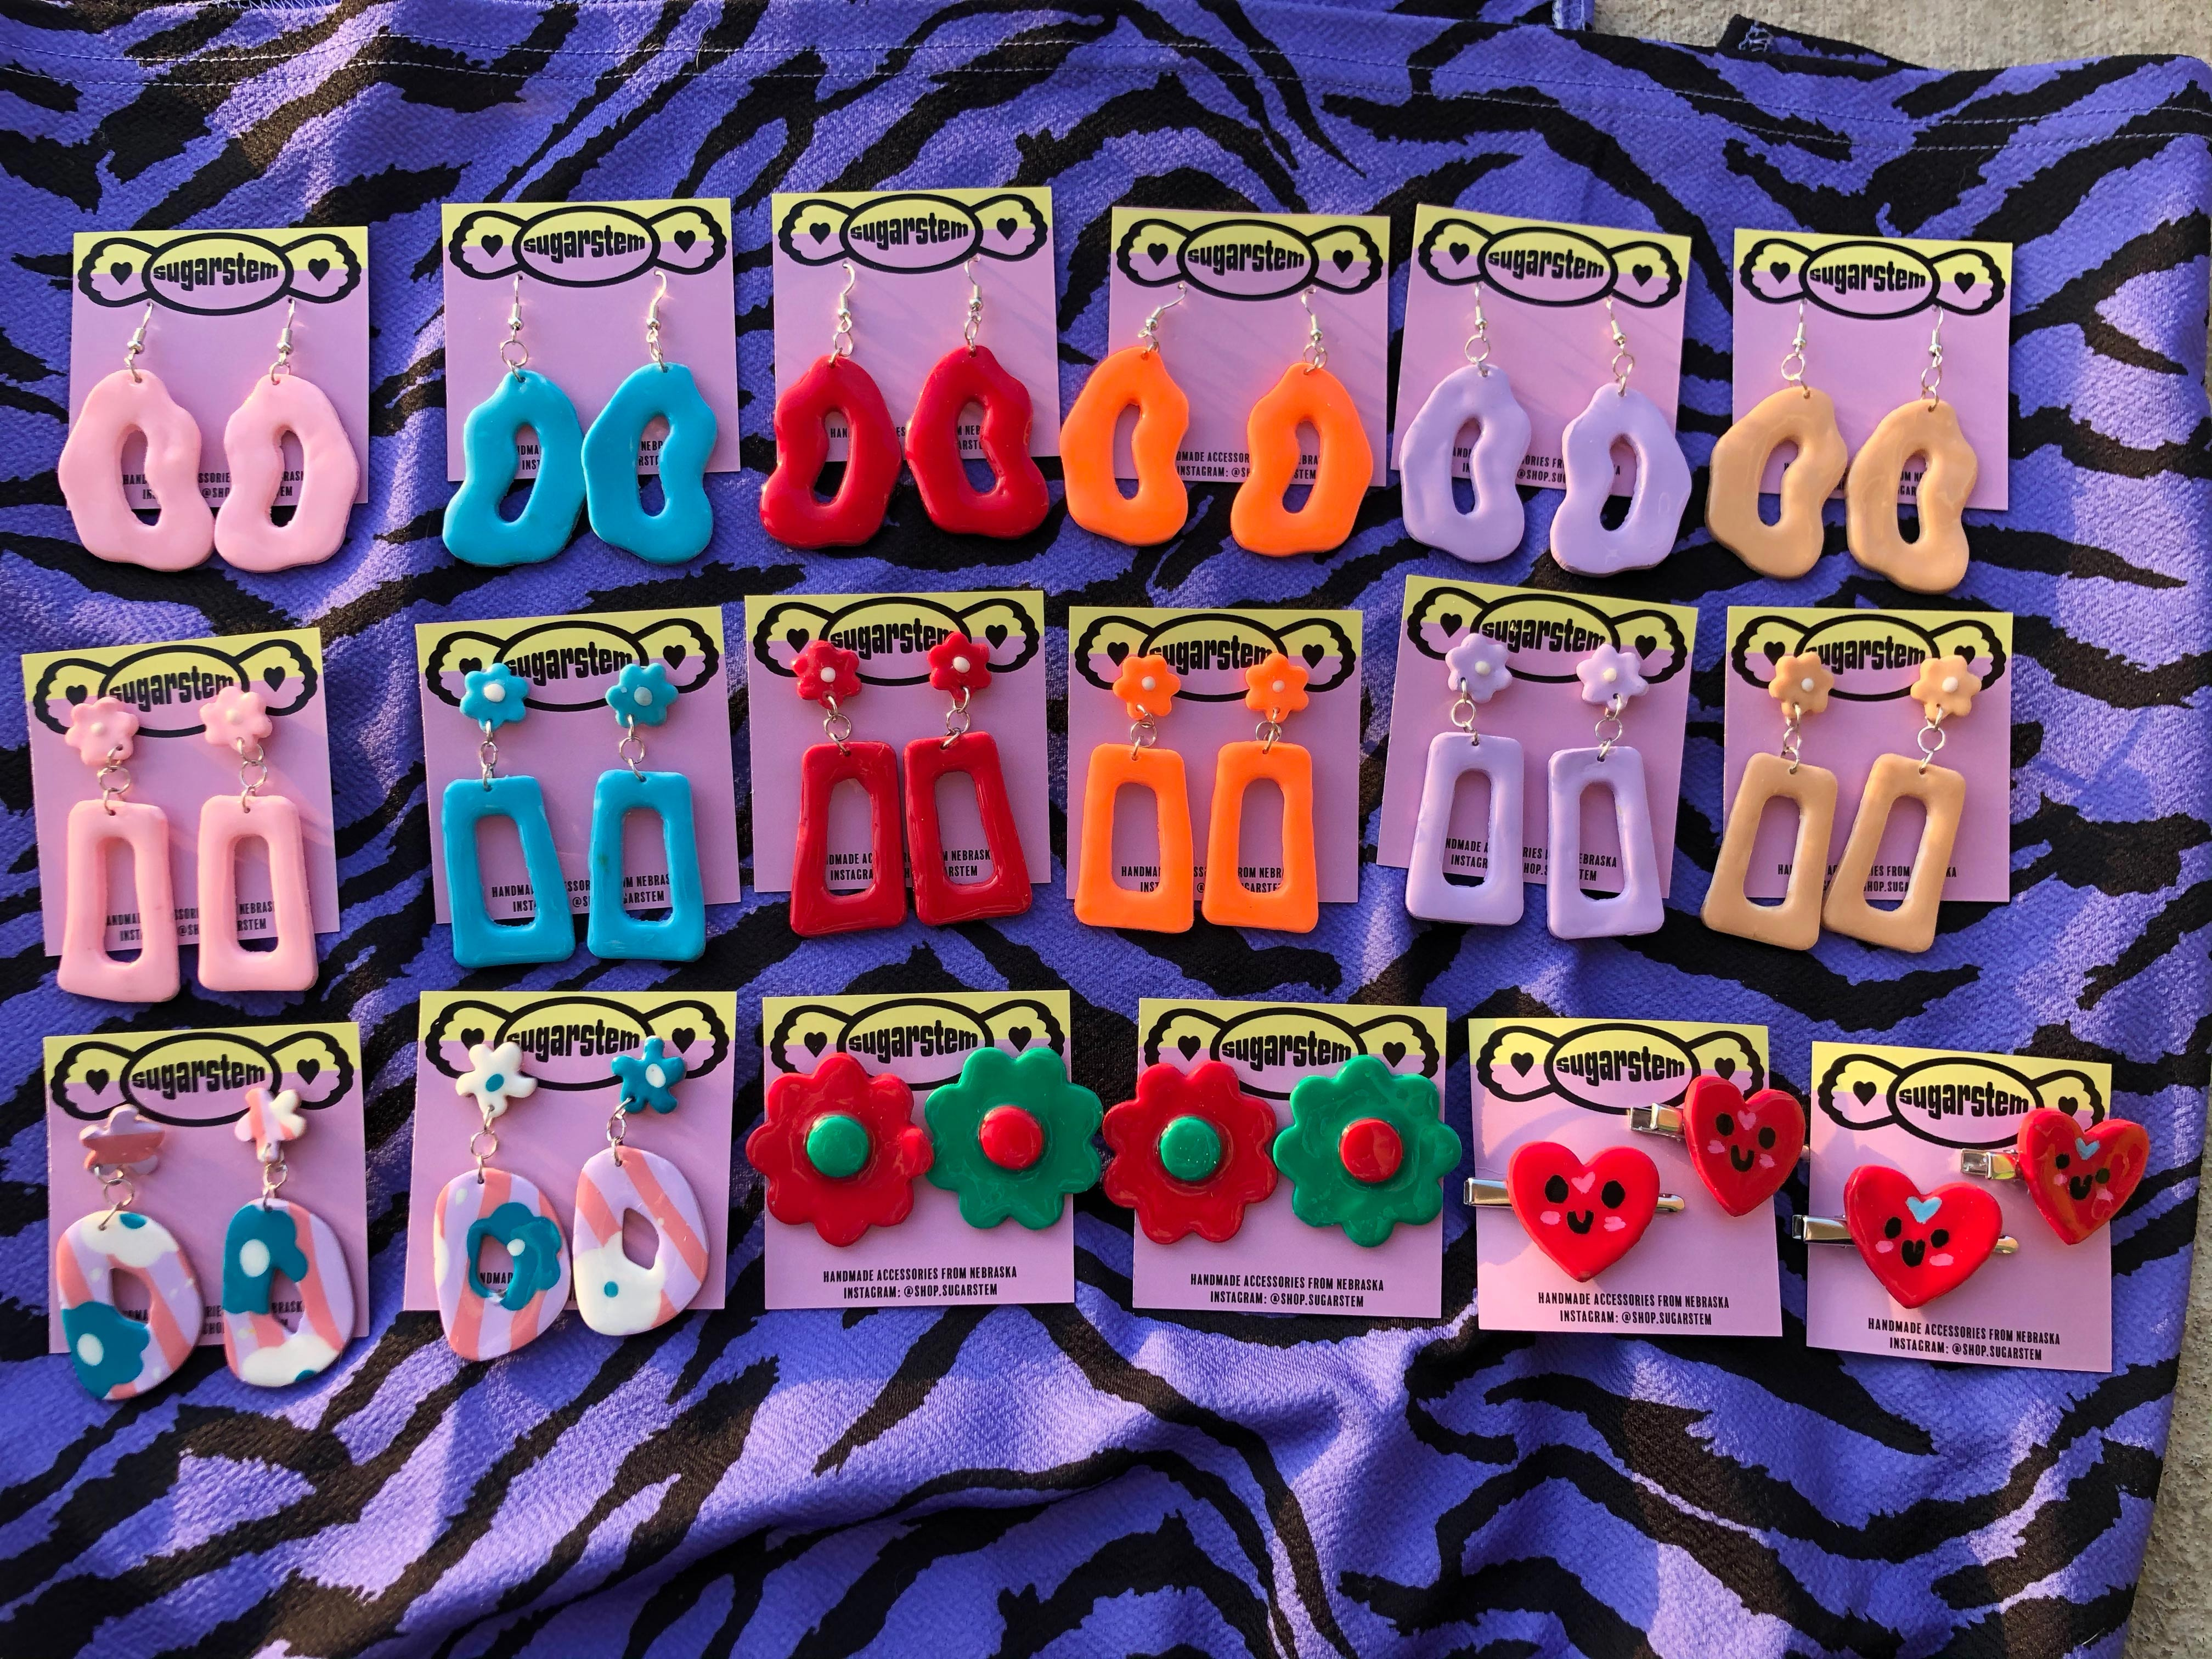 Rectangular and organically shaped hoops and heart-shaped hair clips